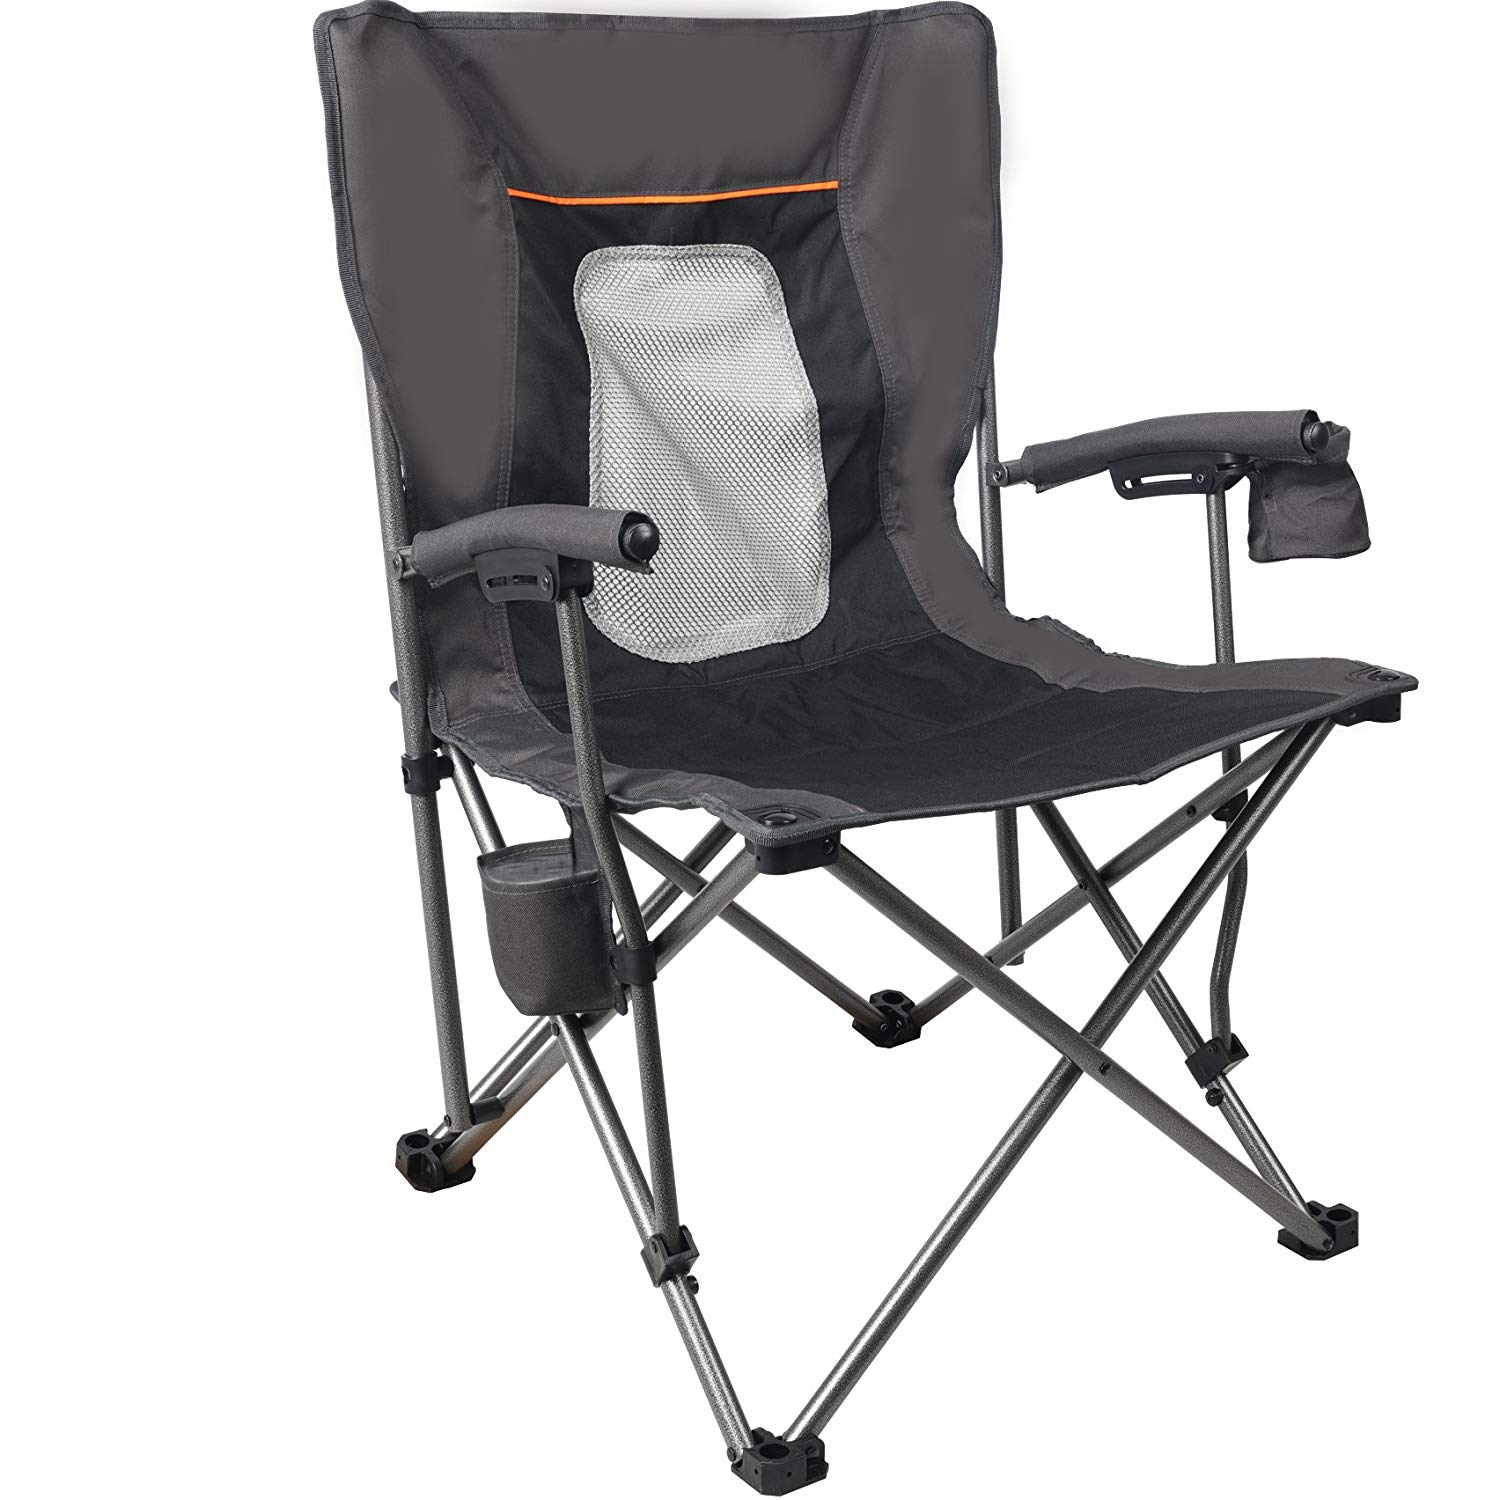 PORTAL Mountaineering Folding Chair